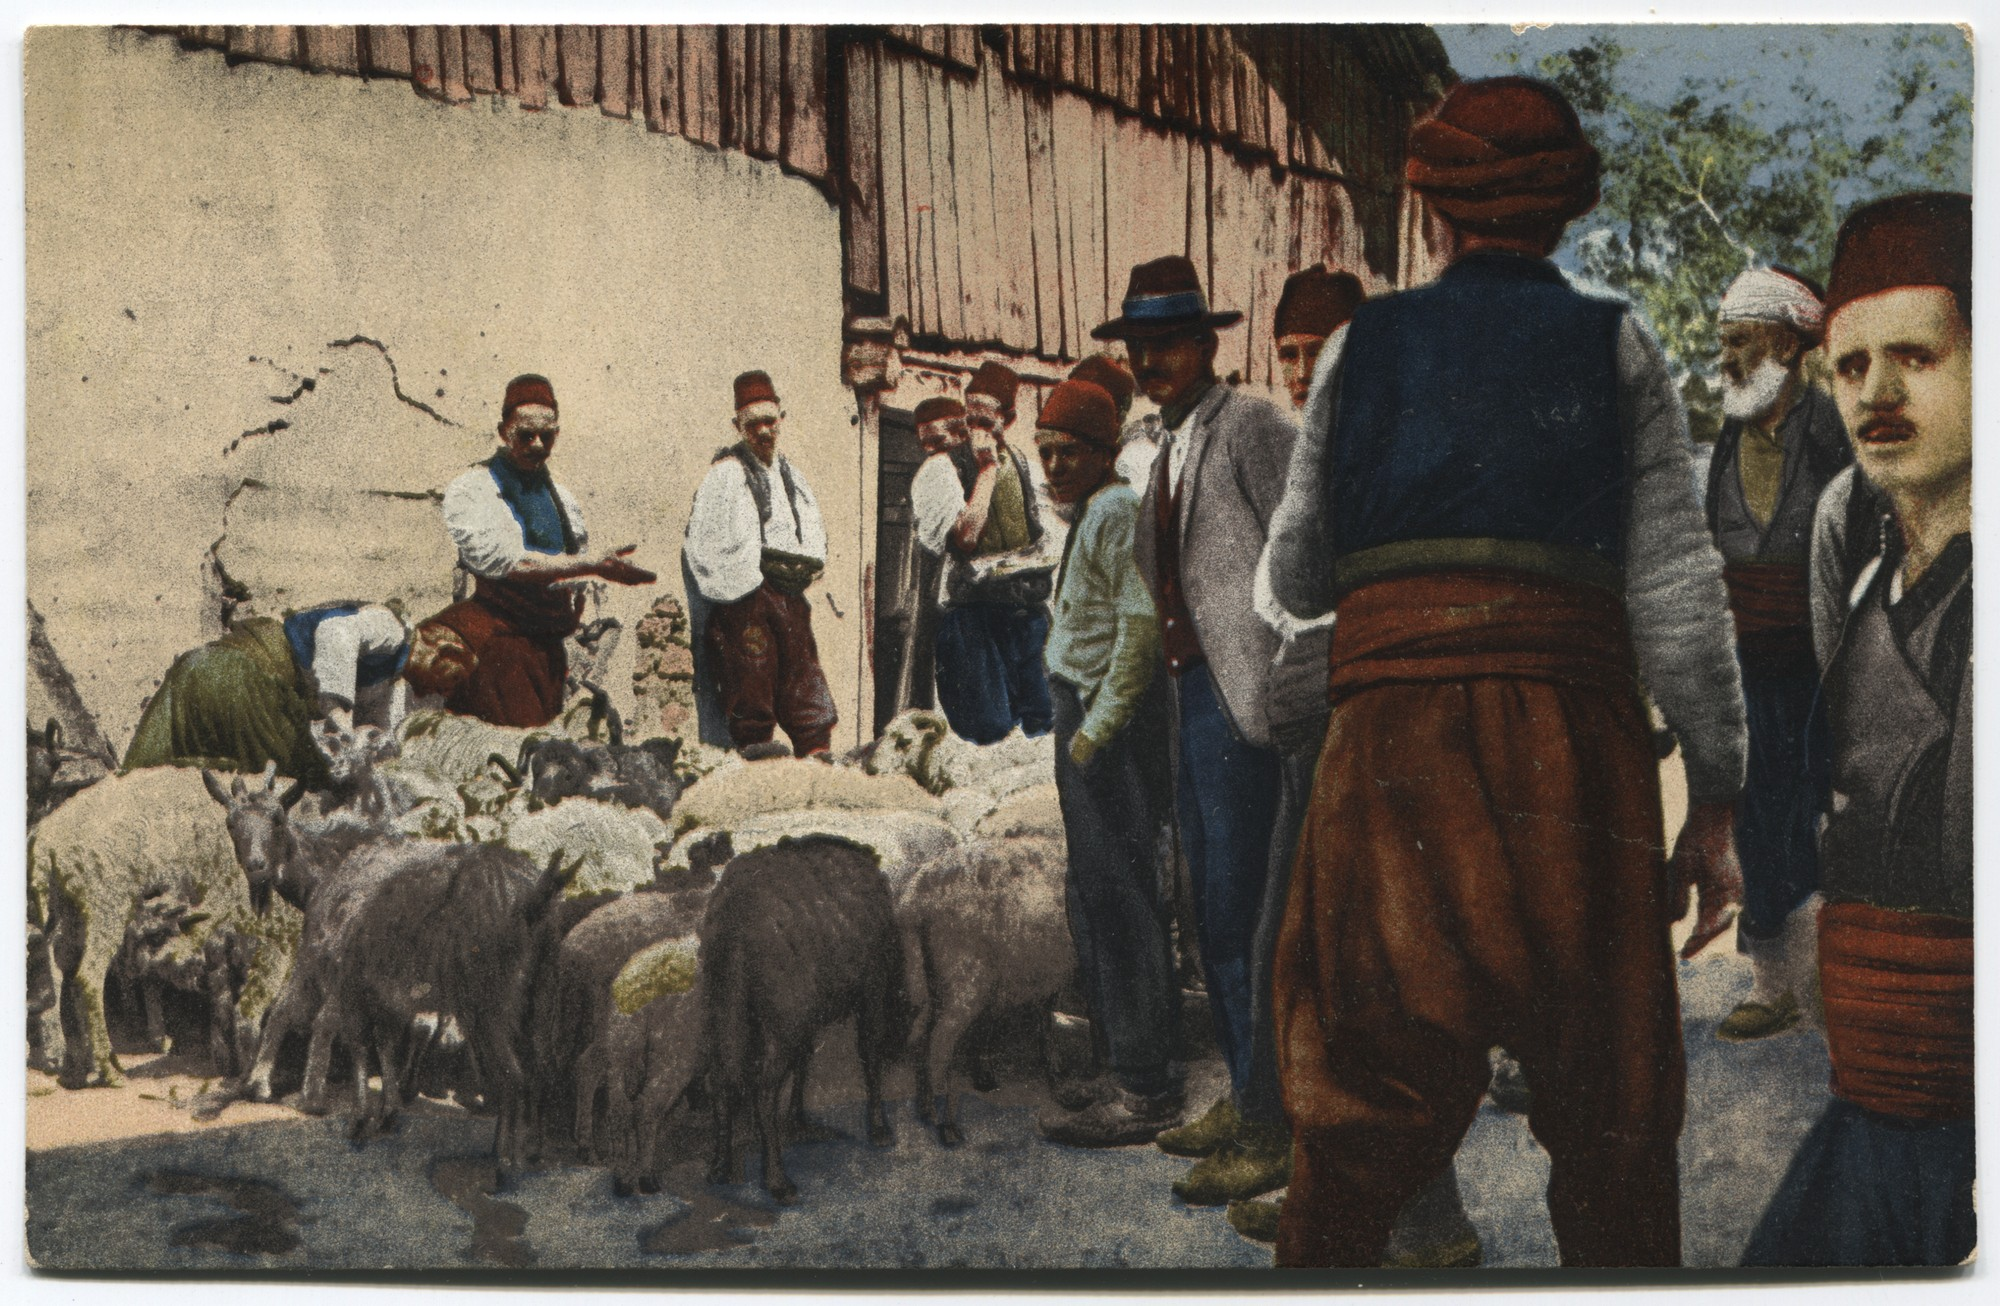 Cattle market, © Museum of City of Sarajevo